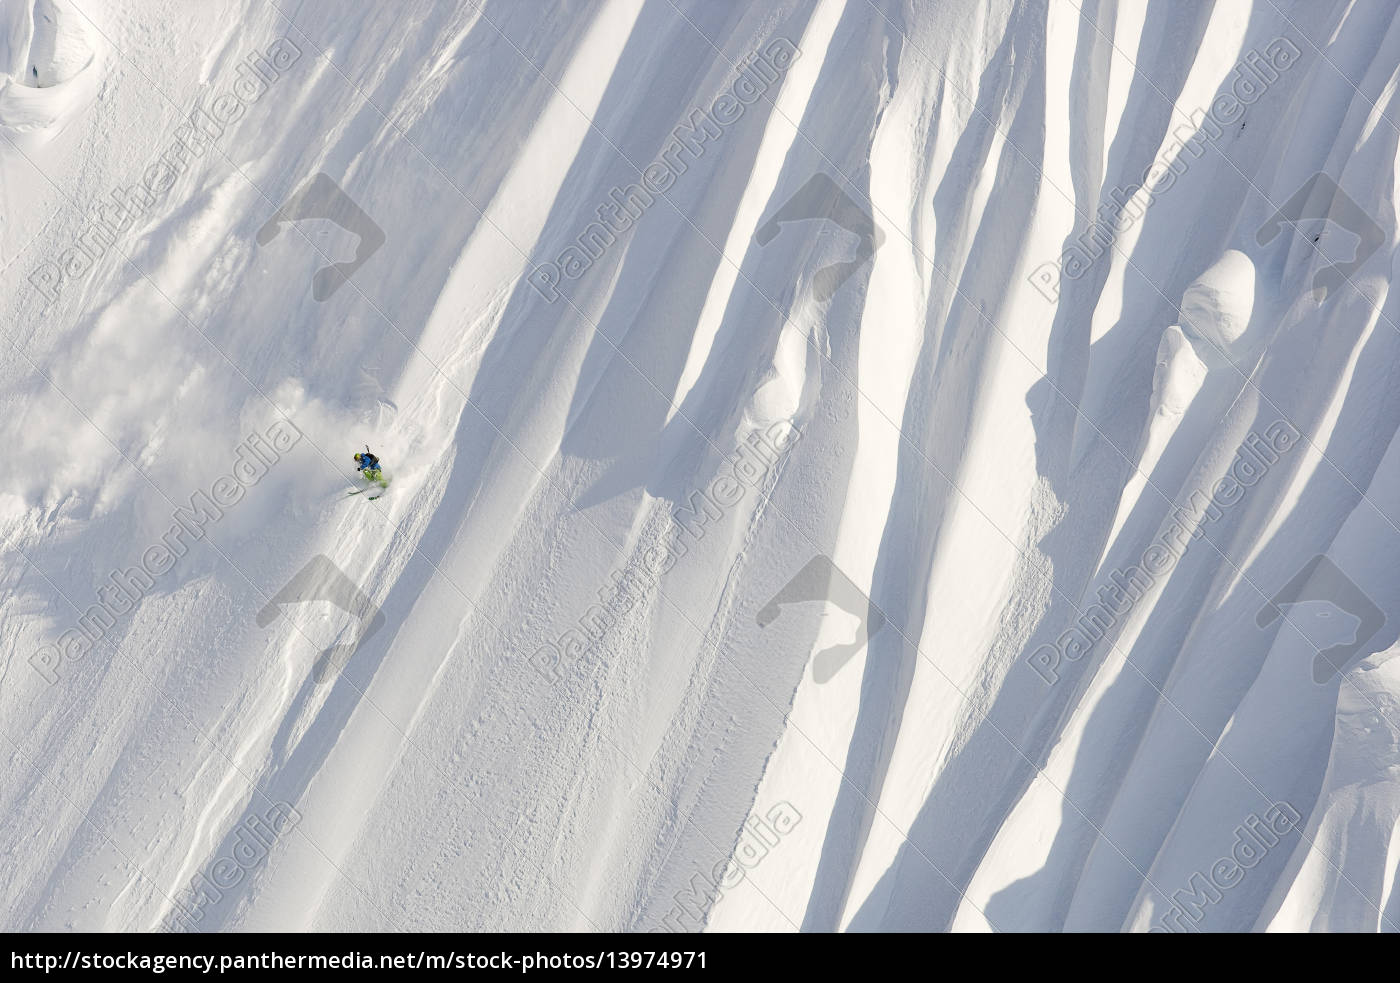 a, male, skier, skis, a, huge - 13974971